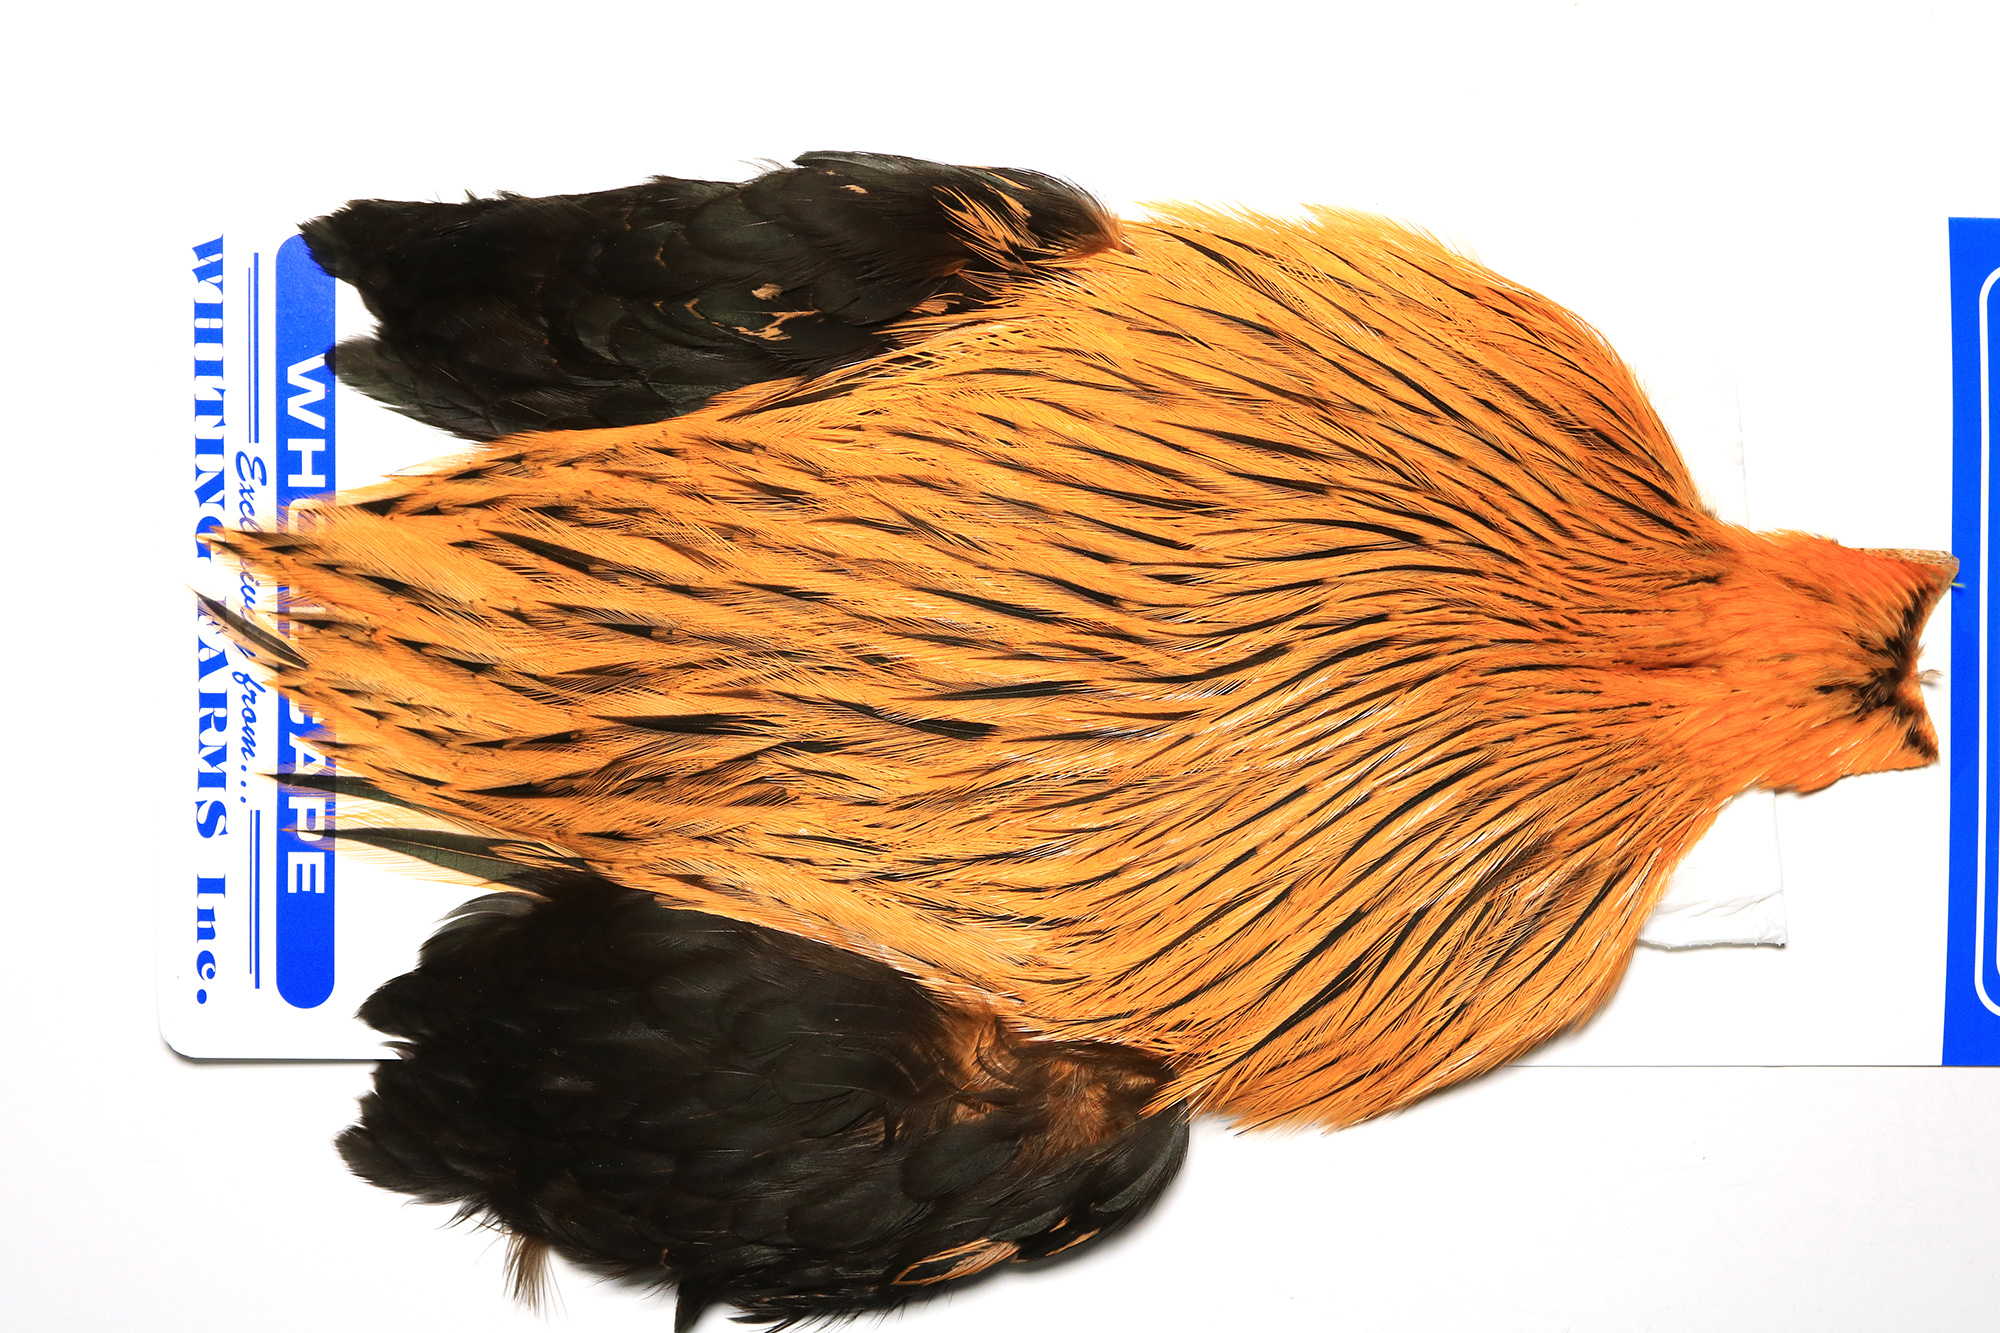 FWSC-4623 Whiting Freshwater Streamer Cape Badger dyed Shrimp Orange